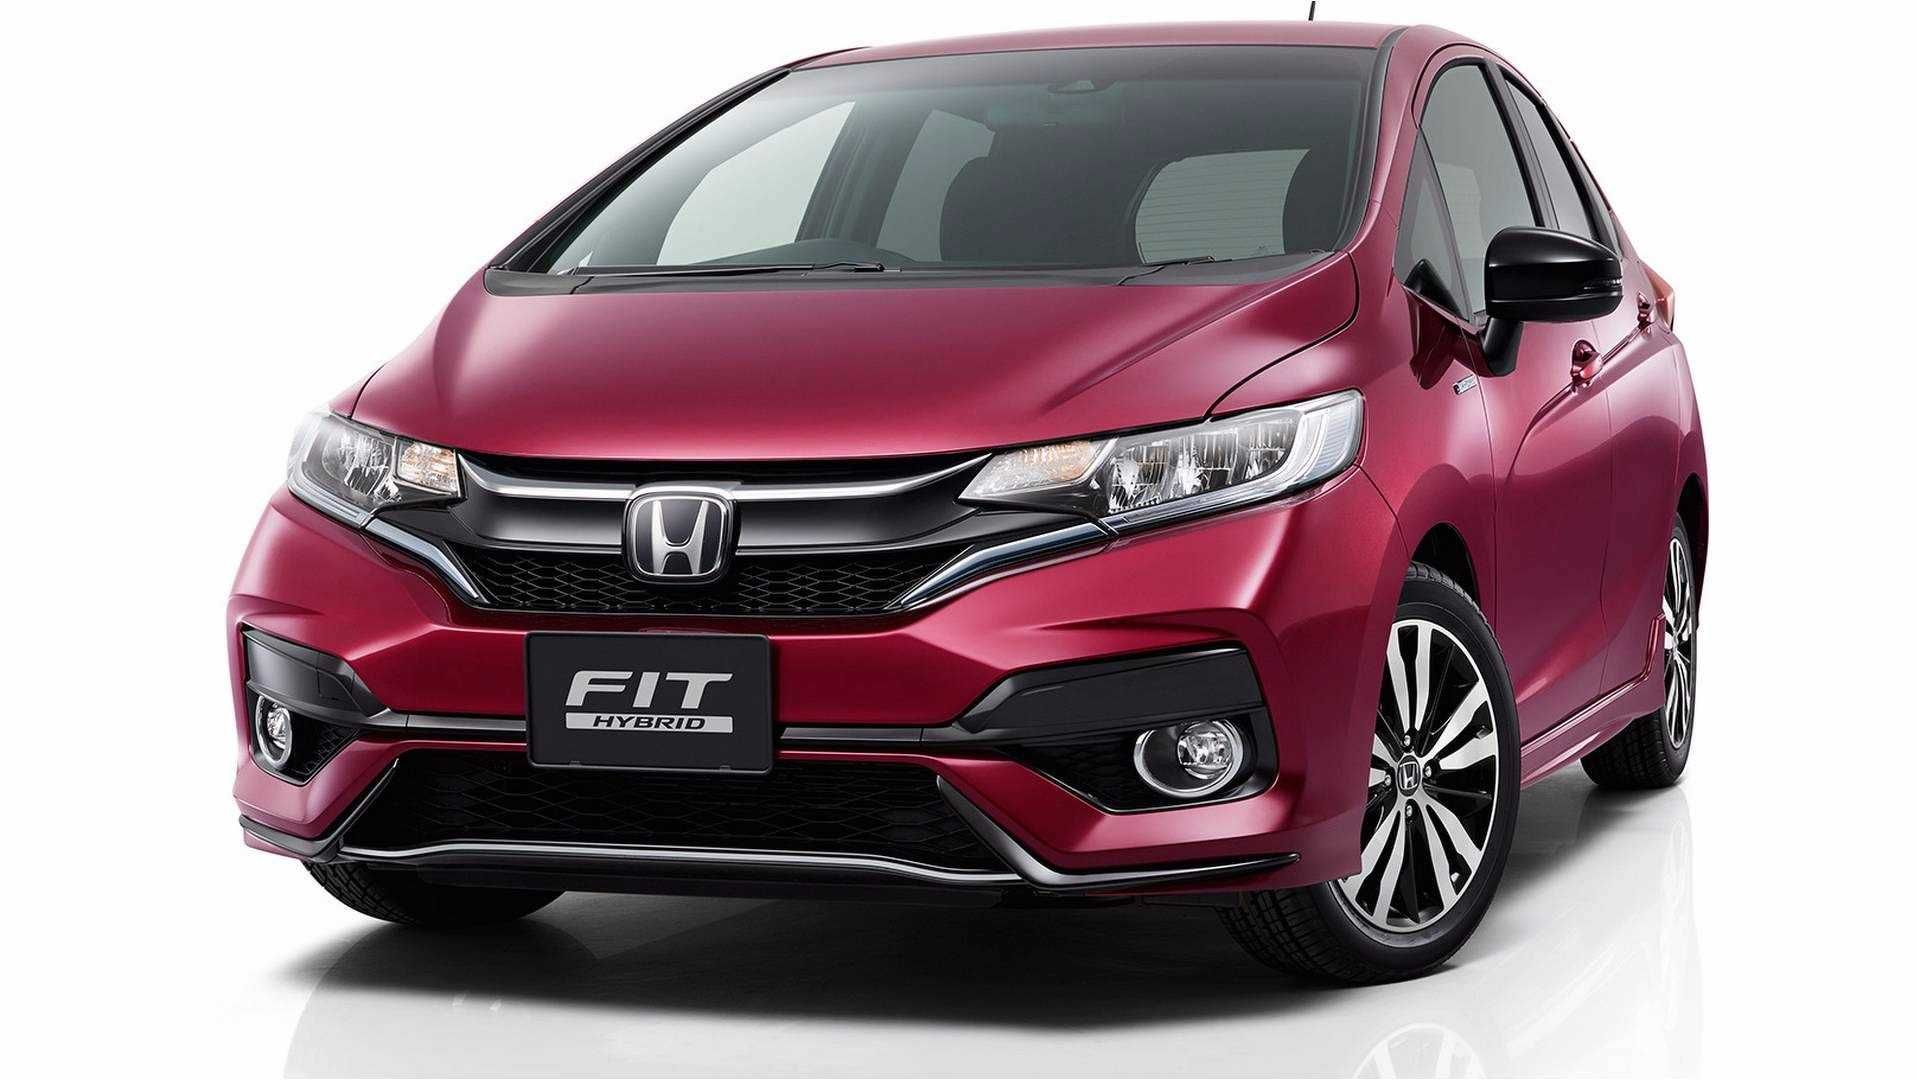 Honda Hybrid Cars >> Cars Best Images Of New Model 2018 Honda Fit Hybrid